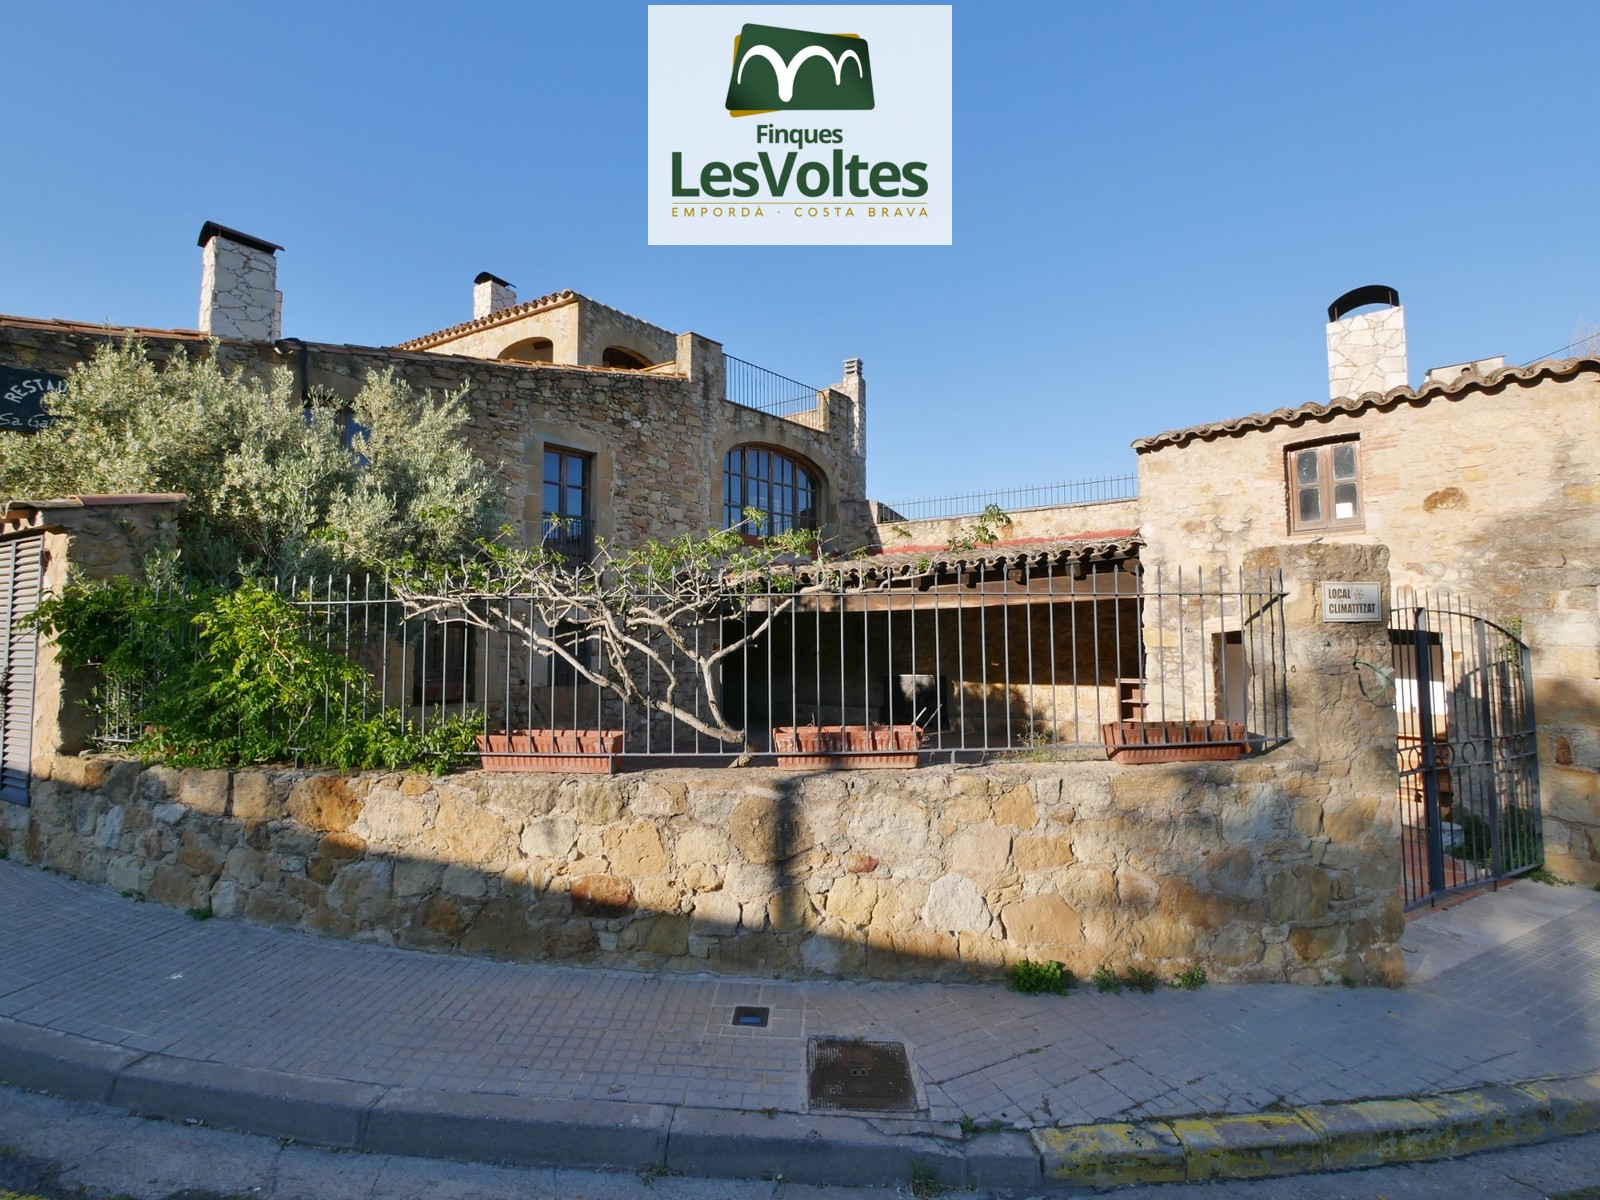 SINGLE FAMILY STONE HOUSE OF 520 M2 WITH 3 FLOORS, YARD AND WAREHOUSE FOR SALE IN THE OLD TOWN OF PALS.